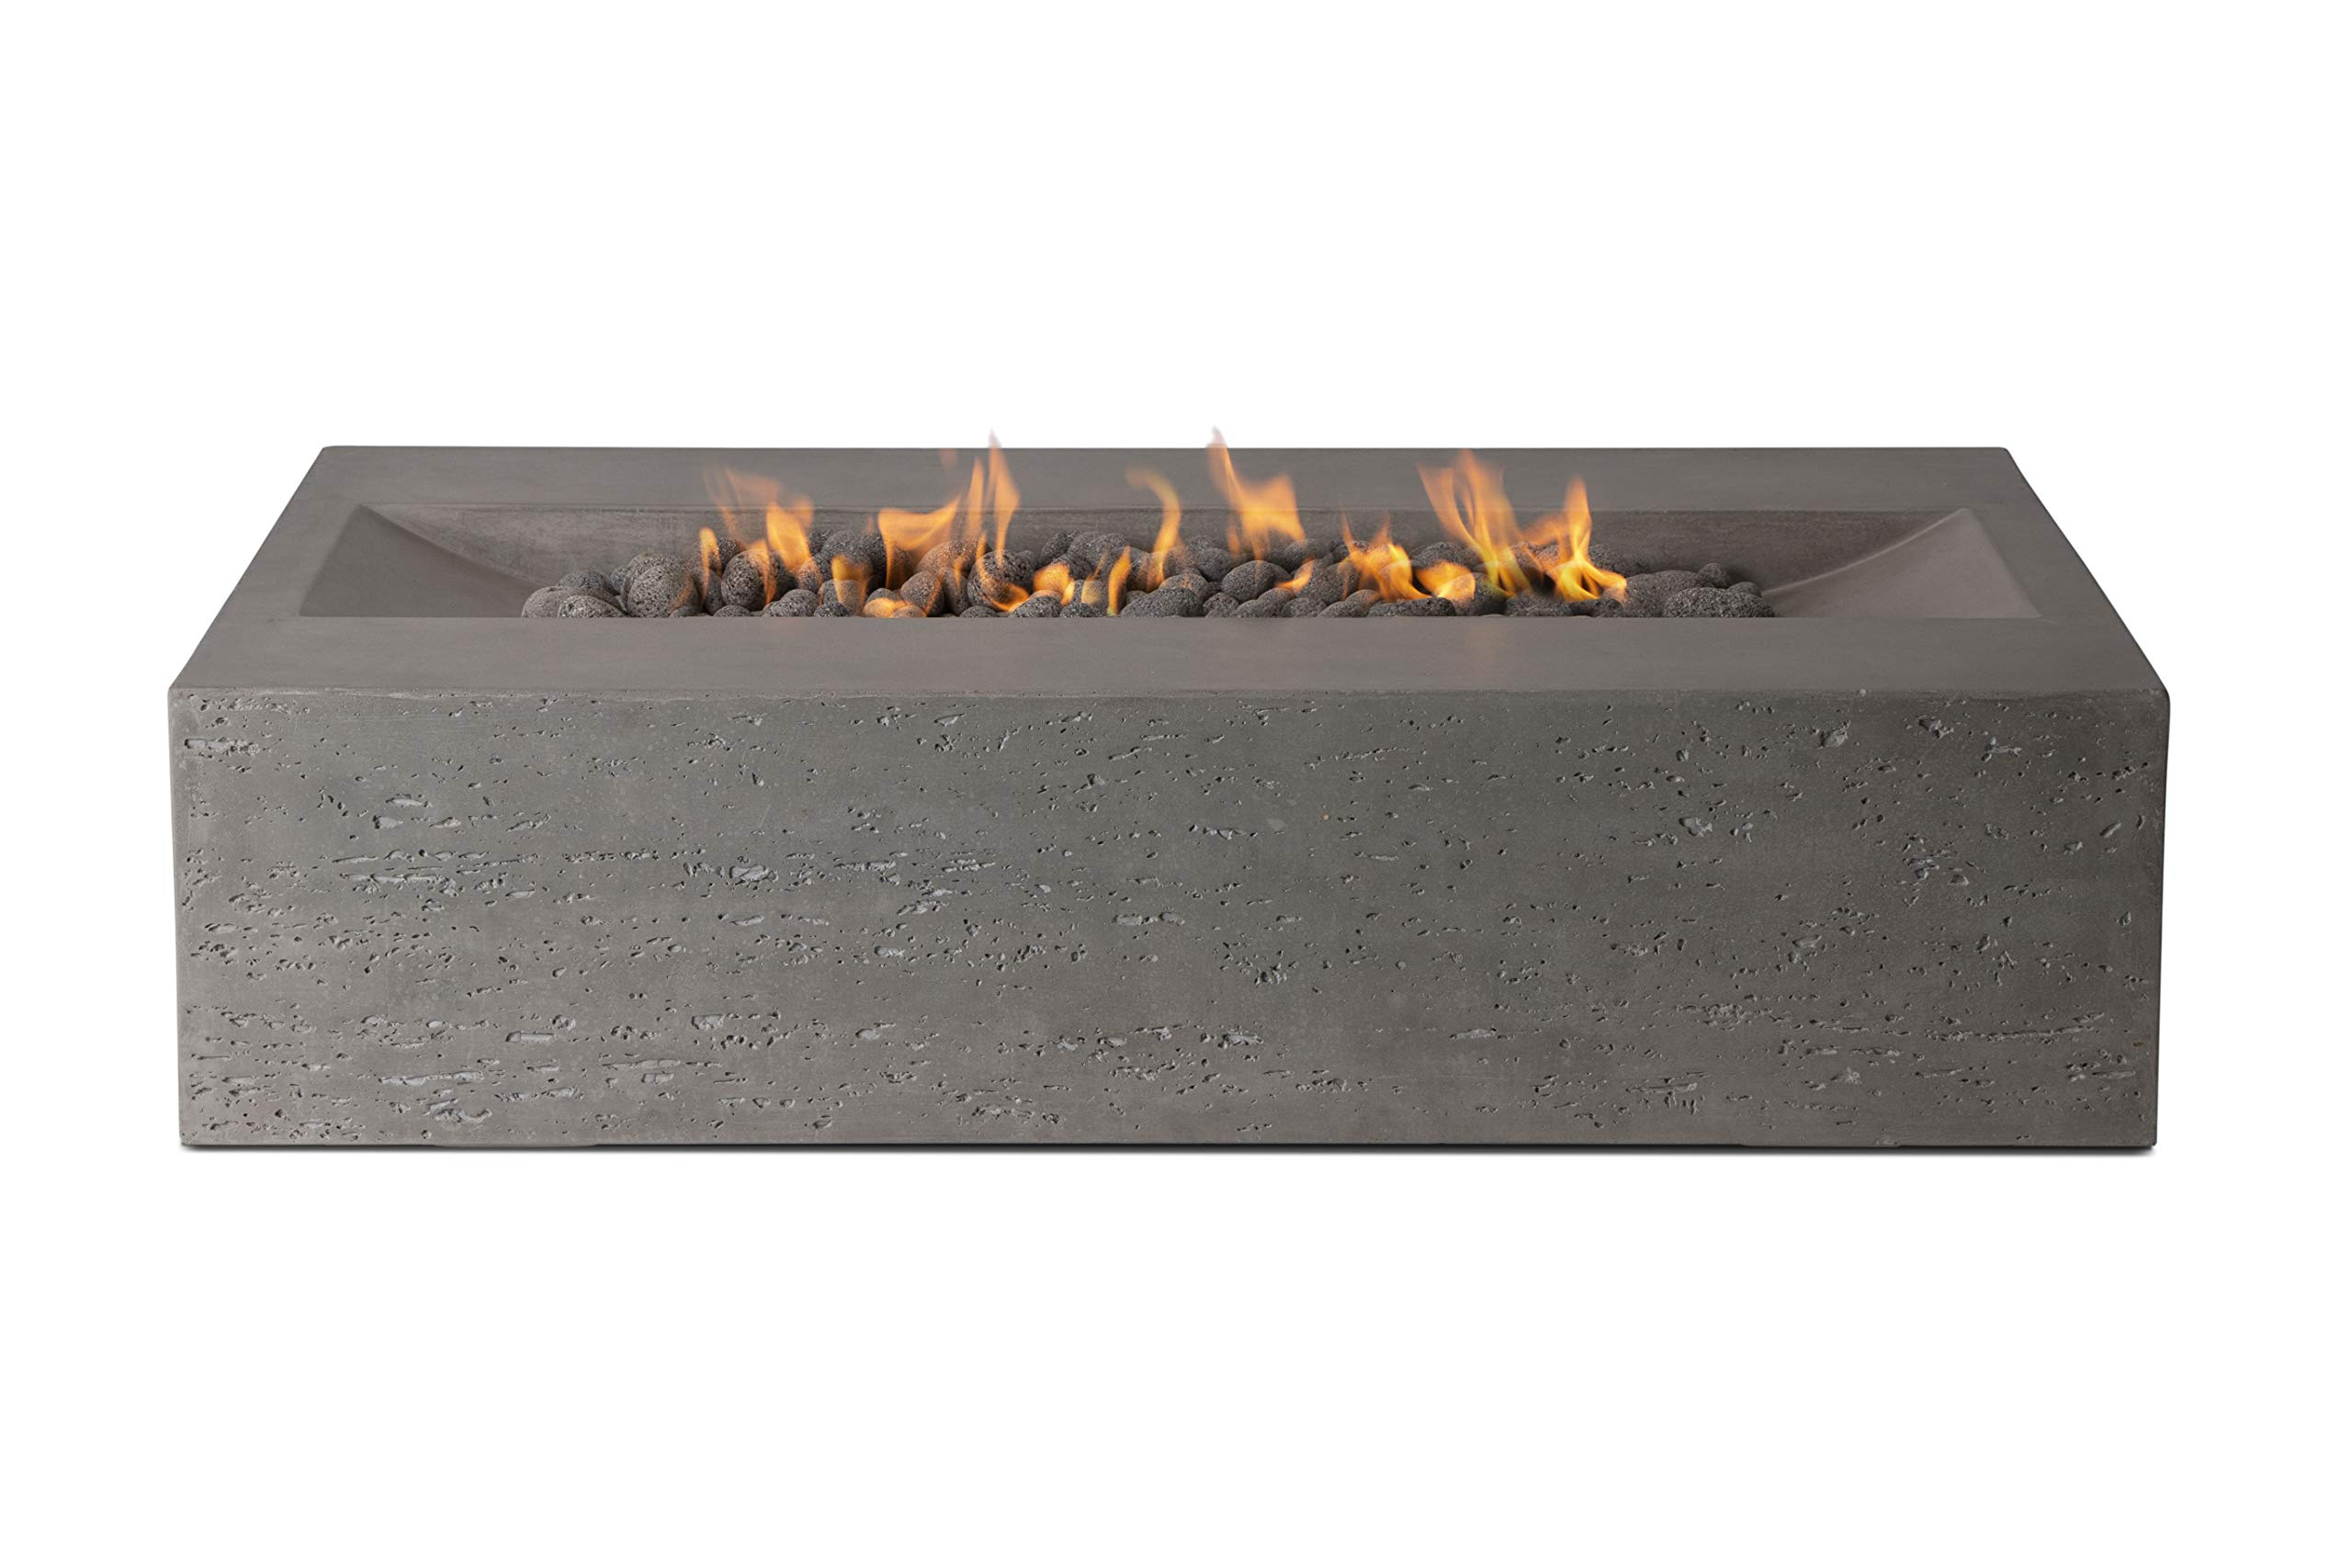 Pyromania Millenia Outdoor Fire Pit Table. Hand Crafted from Concrete. 60,000 BTU Stainless Steel Burner with Electronic Ignition - Natural Gas, Slate Color (Lava Rock Included) by Pyromania